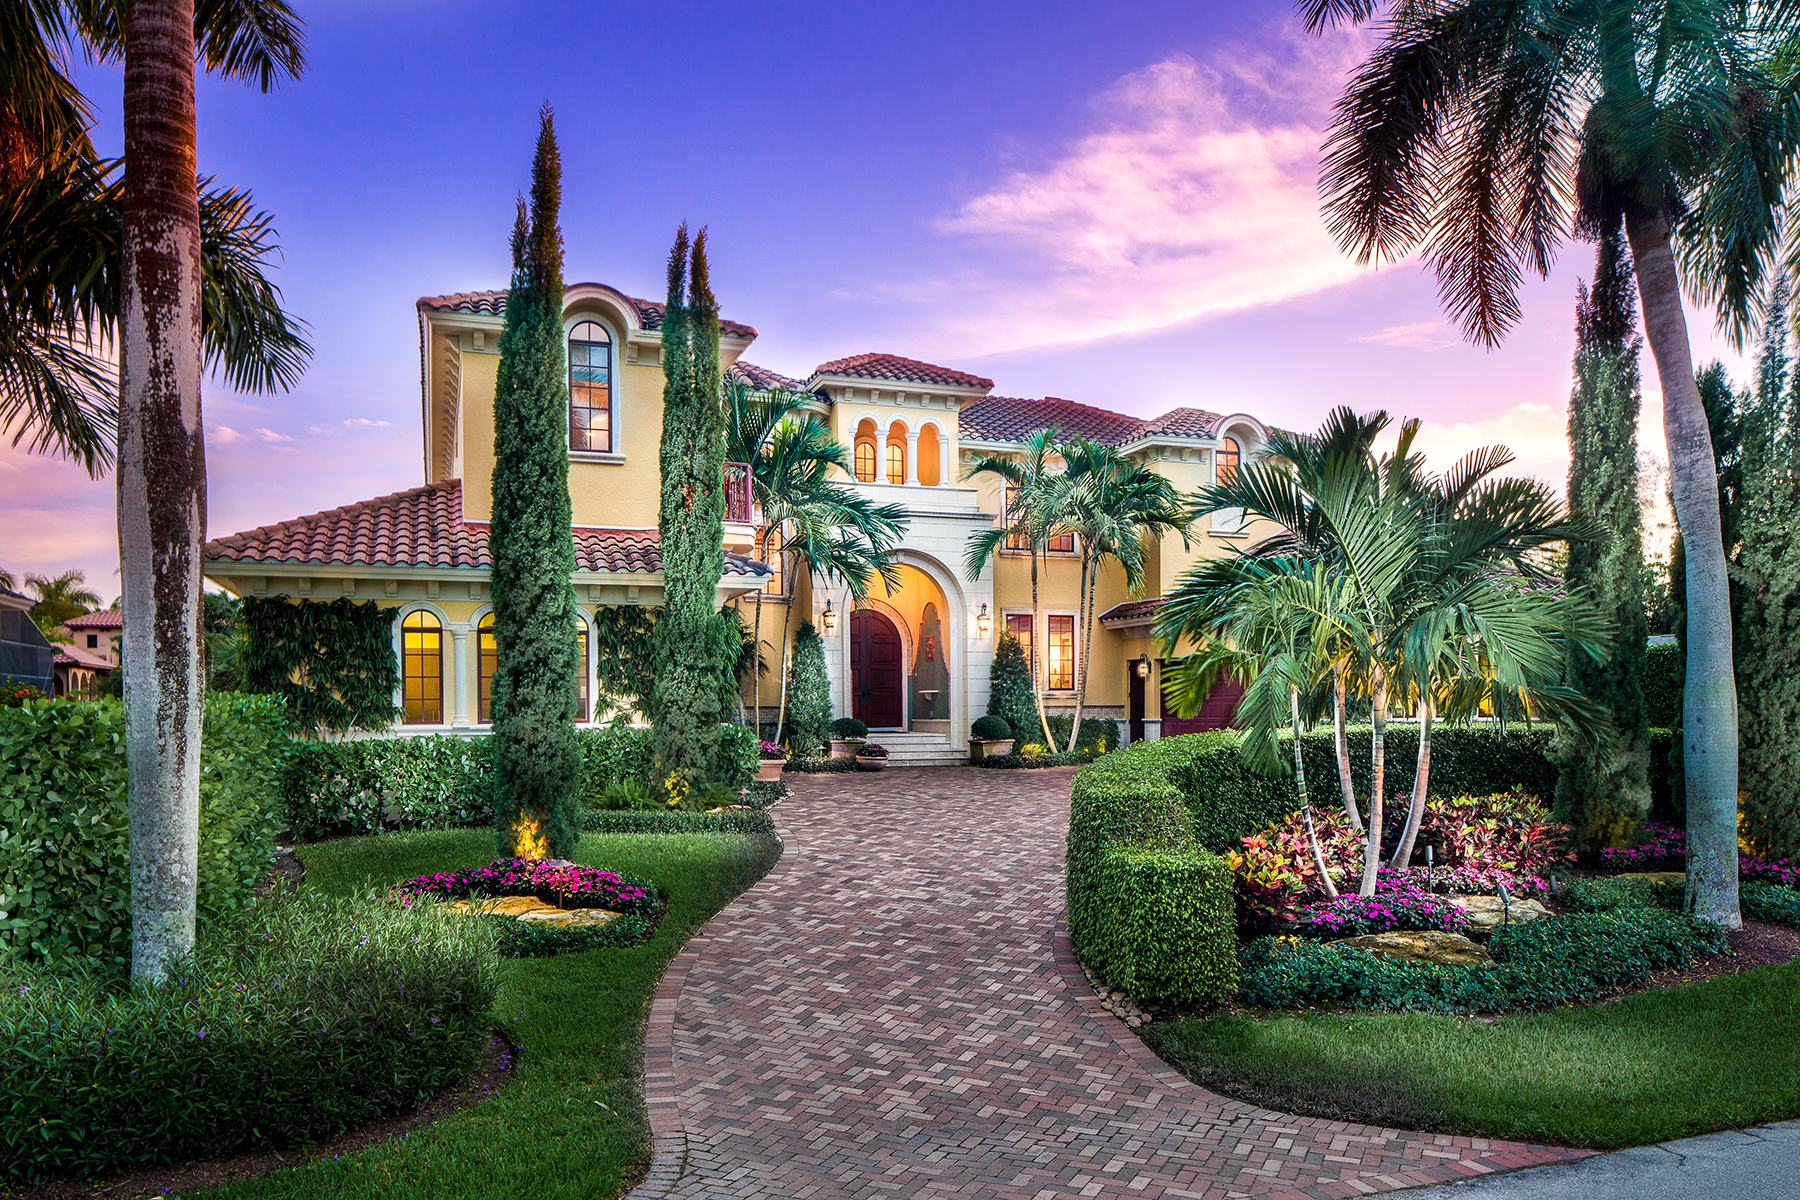 Casa Unifamiliar por un Venta en Naples 590 17th Ave S Aqualane Shores, Naples, Florida, 34102 Estados Unidos